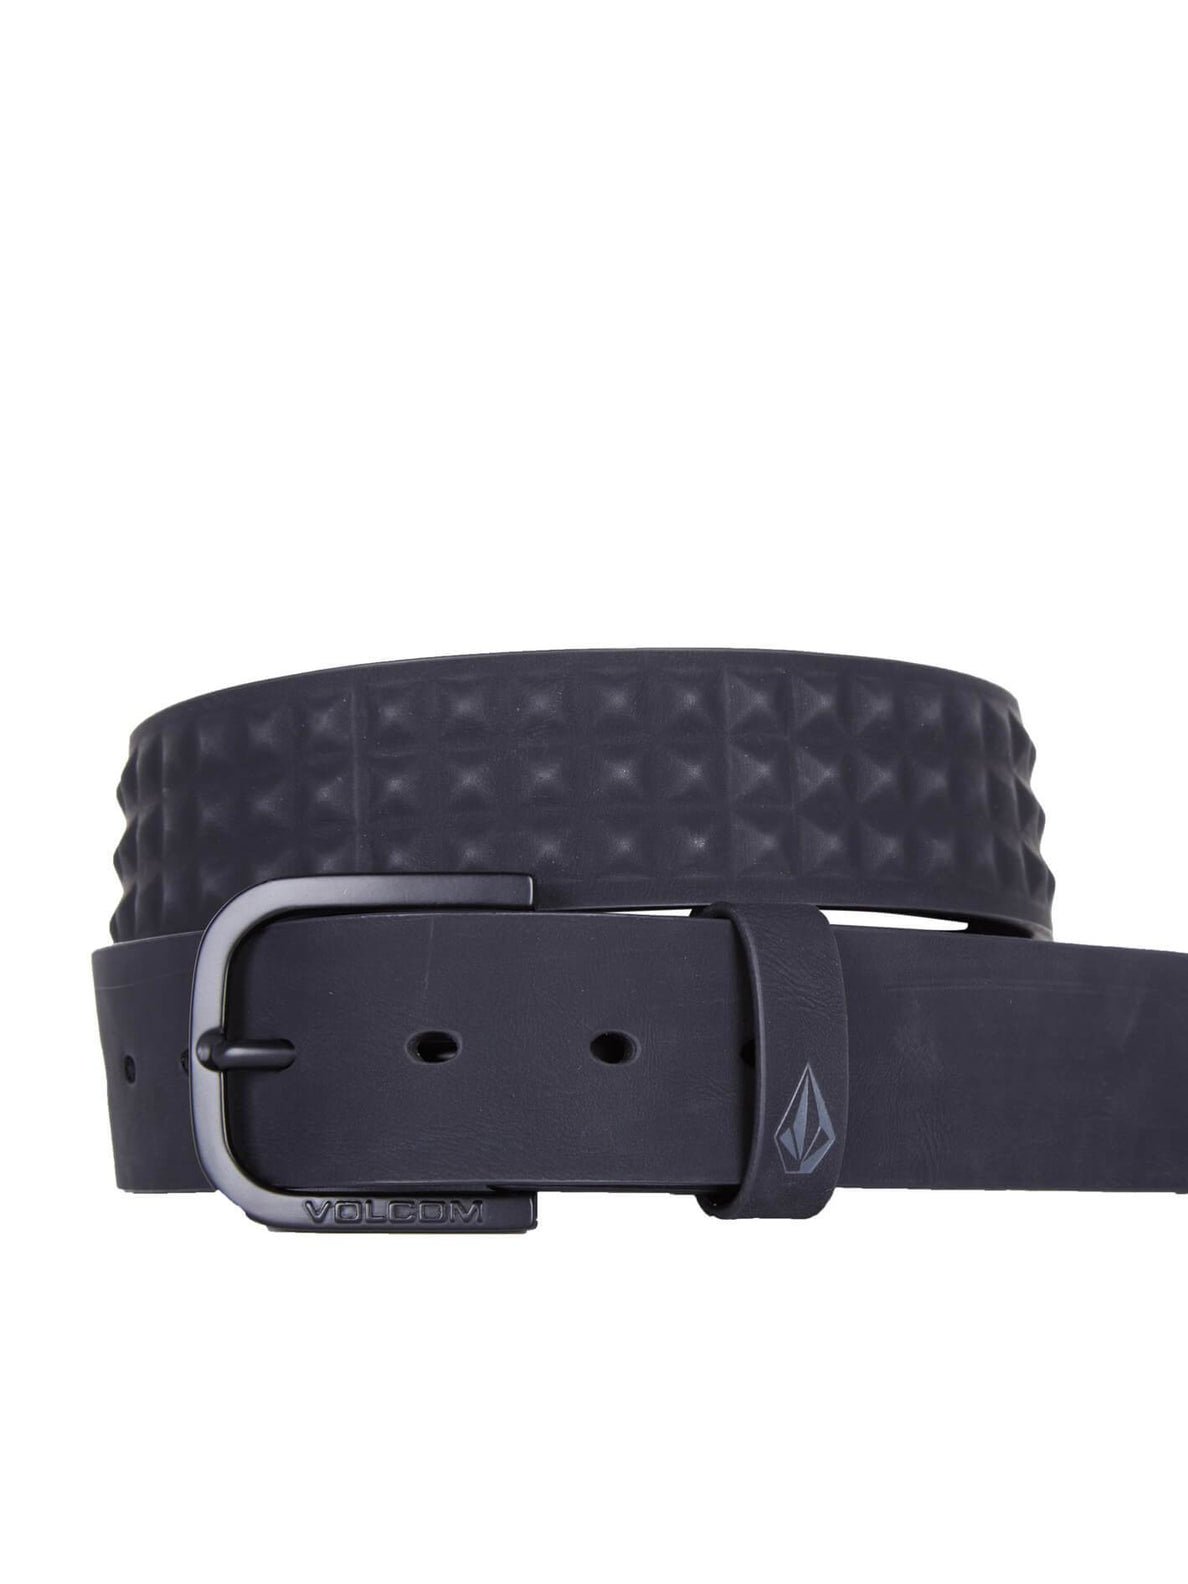 DRAFT PU BELT NEW BLACK